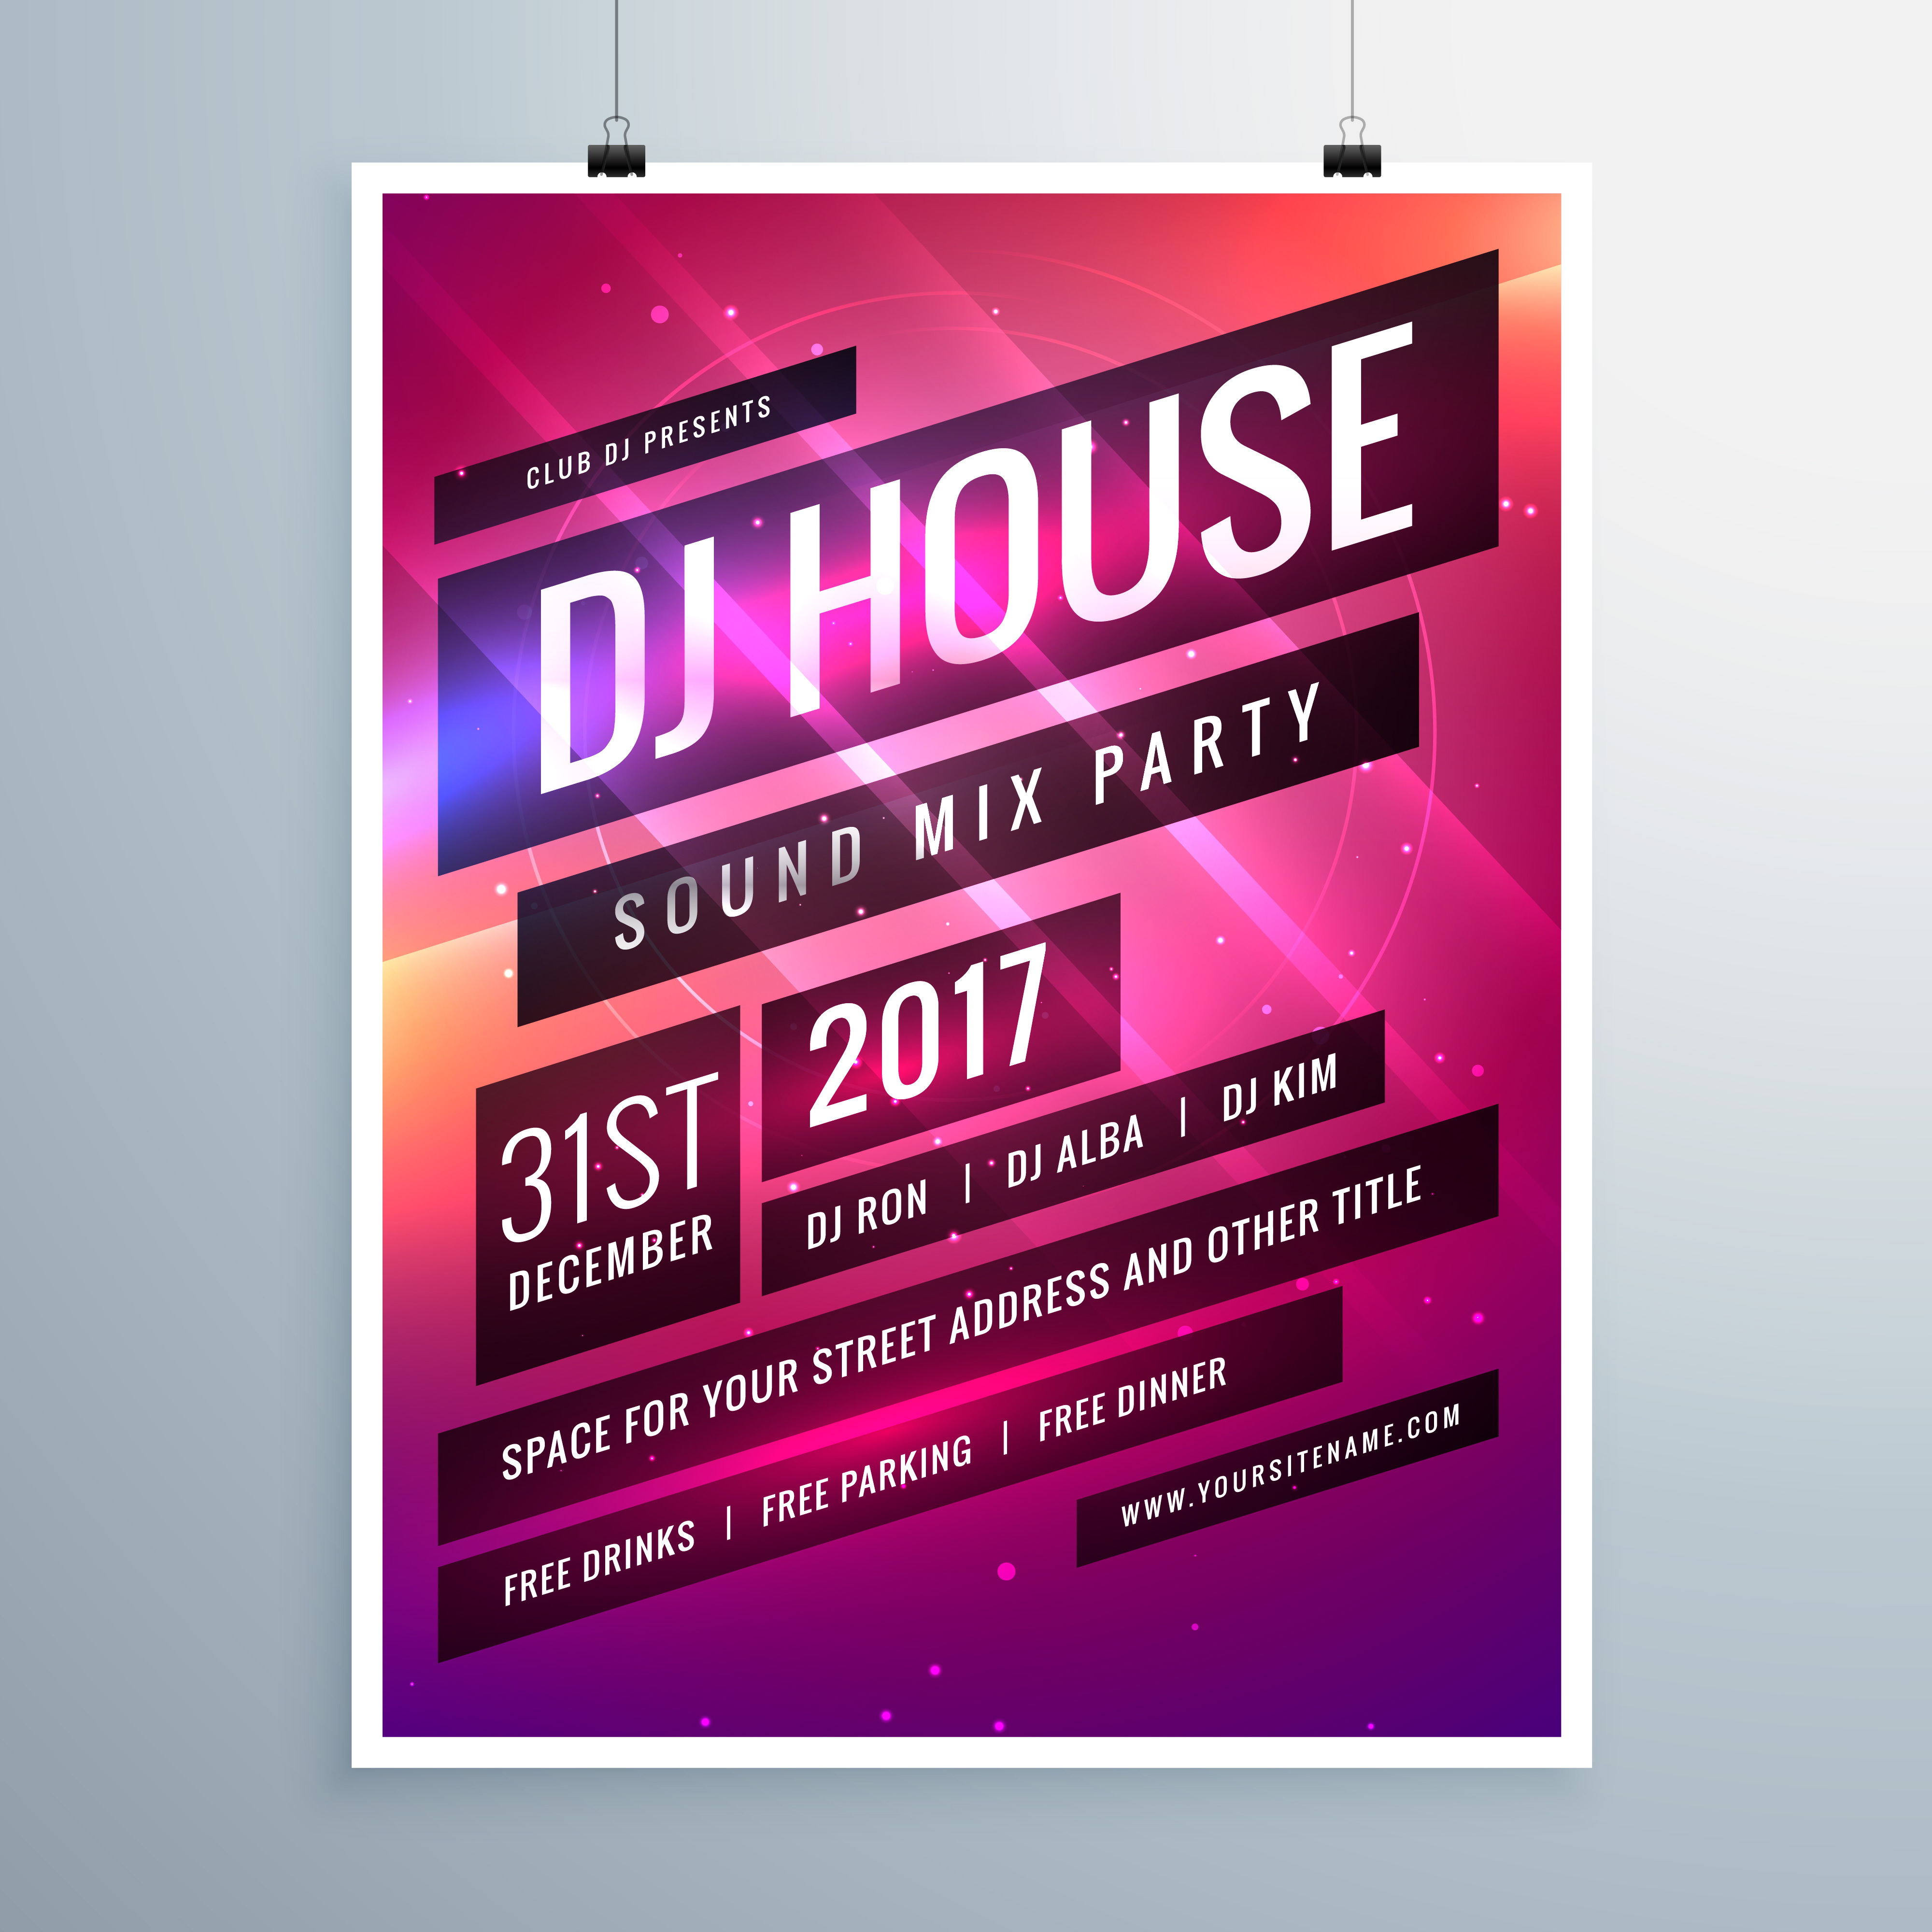 music sound party event flyer template in abstract pink backgrou ...